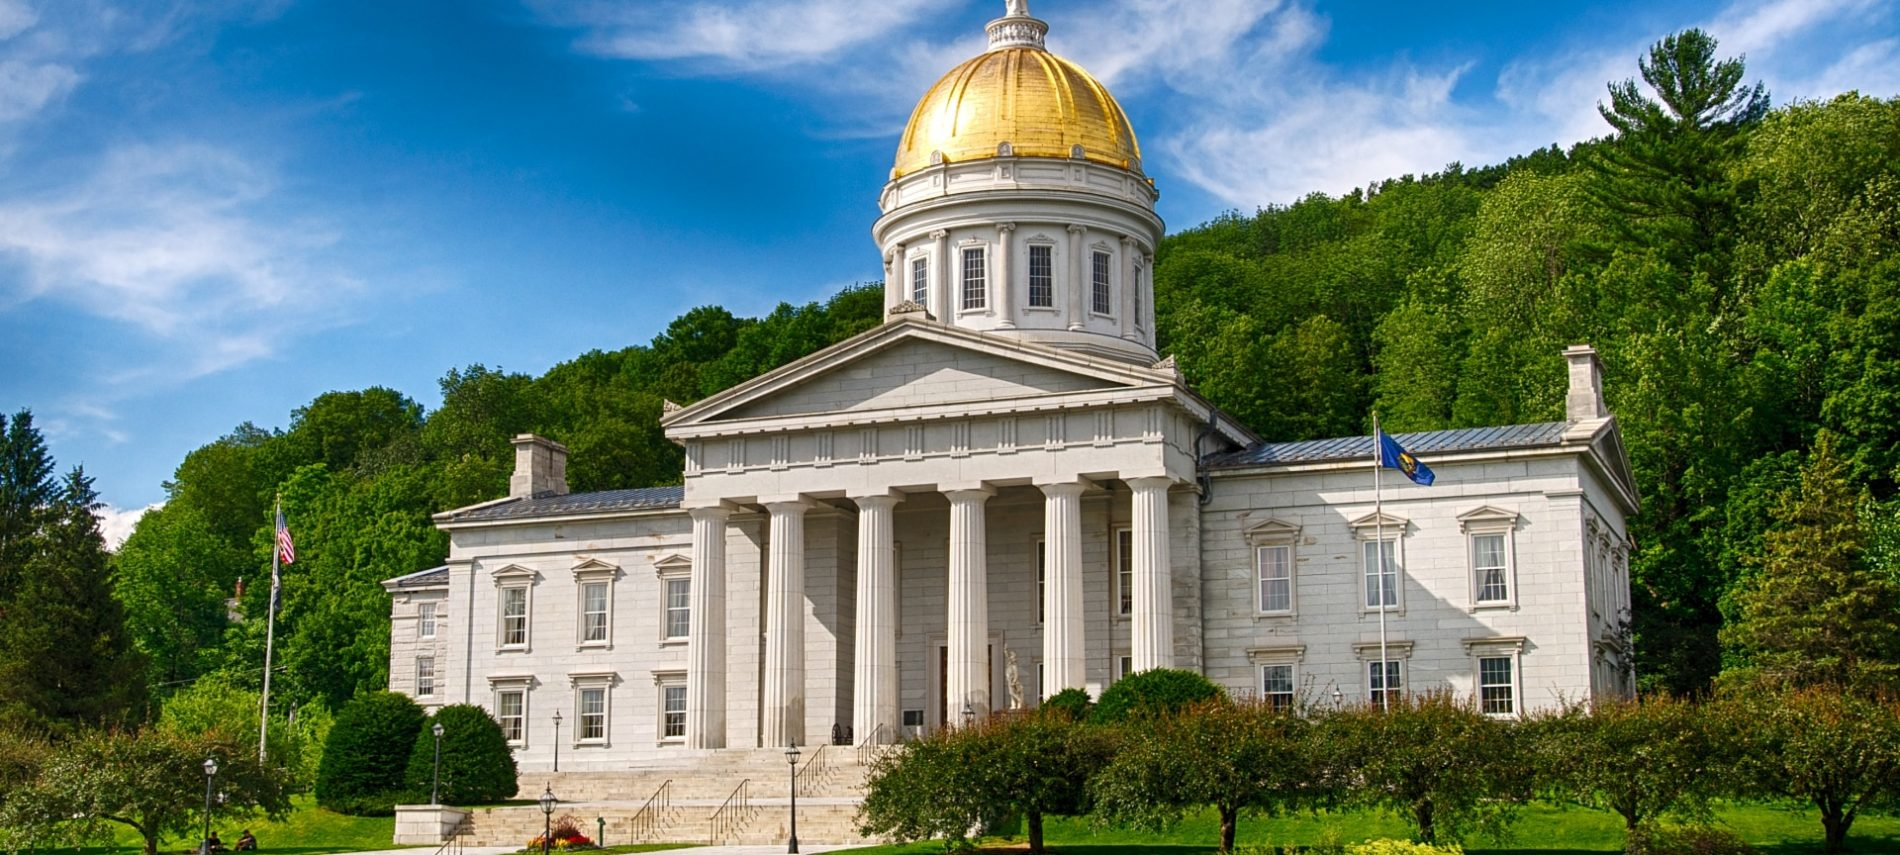 vermont state house with gold dome